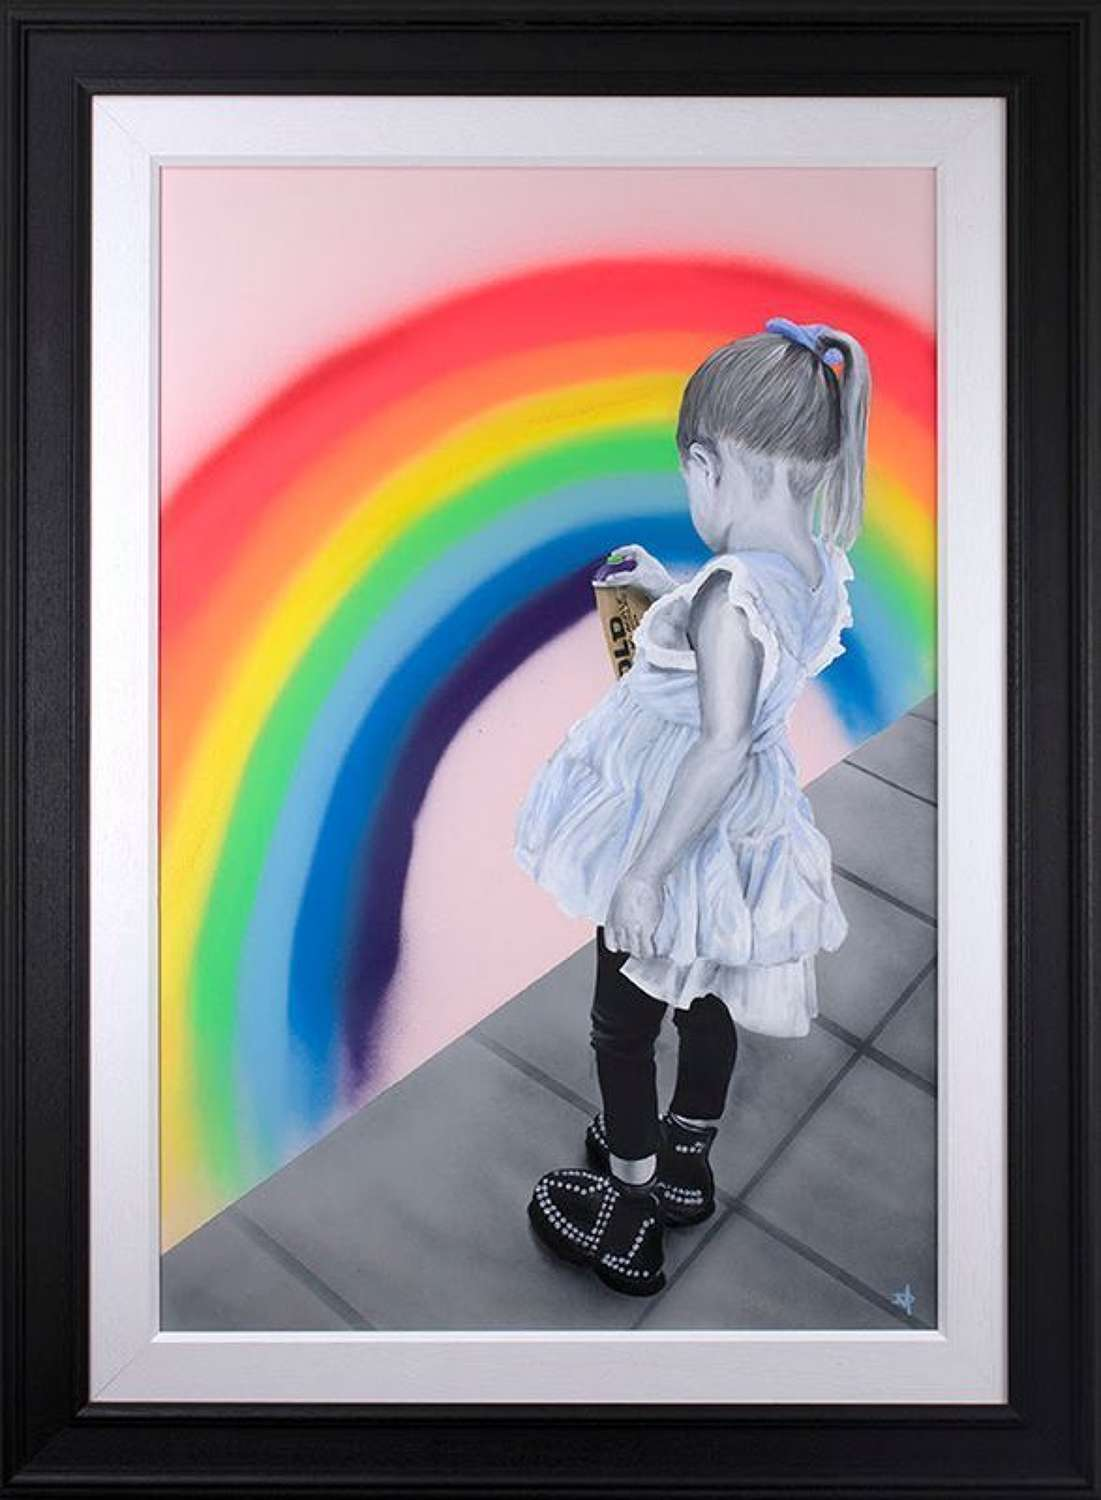 A Rainbow For Heroes Framed Art Print by Dean Martin